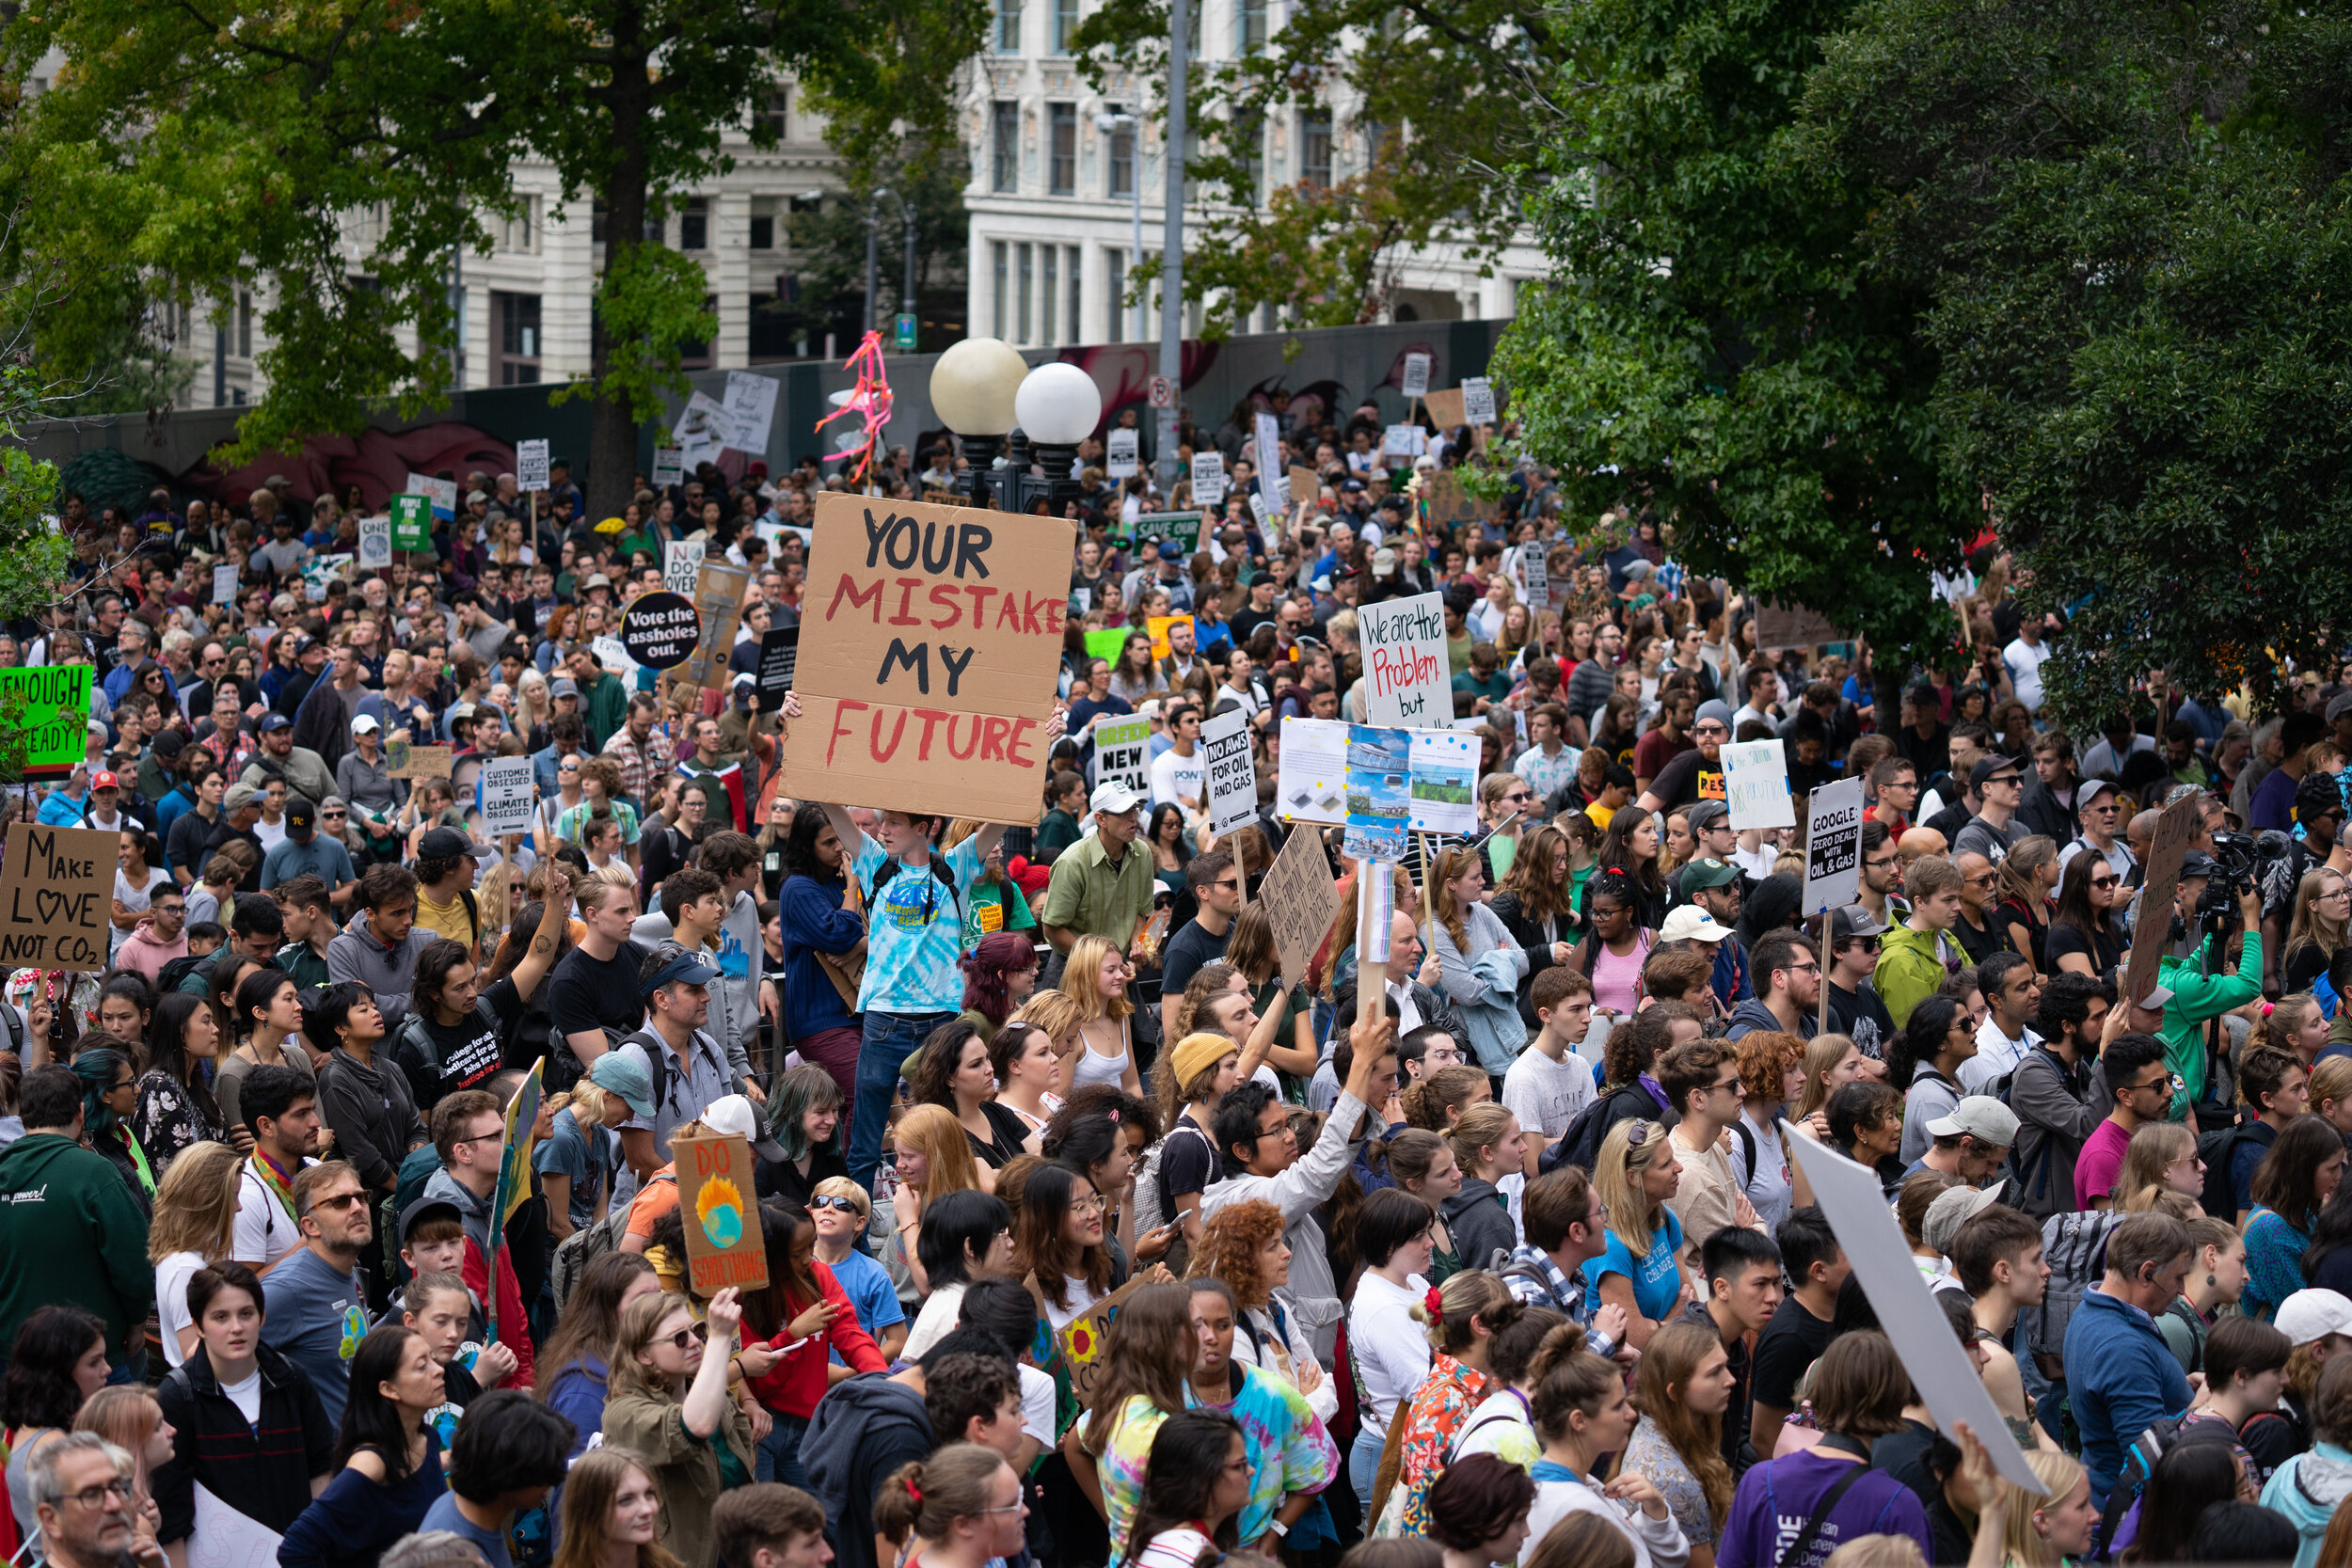 A crowd of demonstrators gathers outside of City Hall during the Global Climate Strike in Seattle, Washington, U.S., on Friday, Sept. 20, 2019. (Bloomberg)